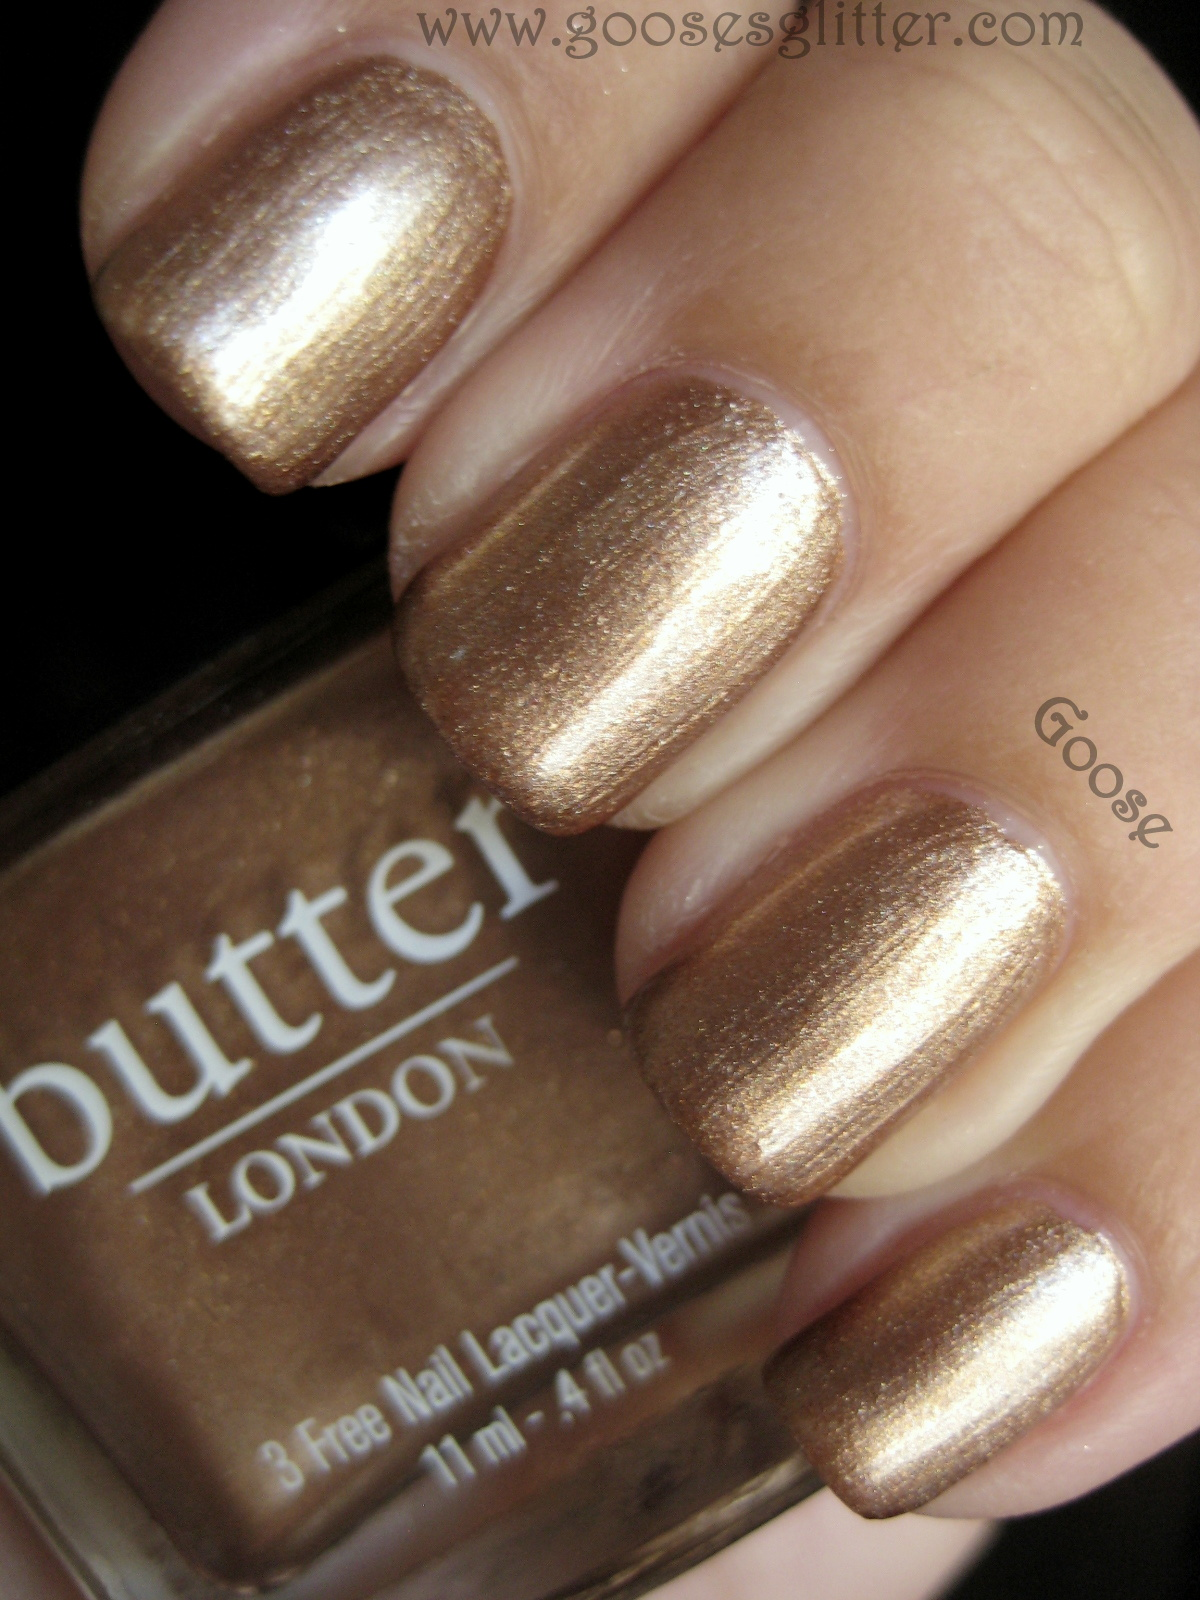 Goose S Glitter Butter London The Old Bill And Chanel Delight